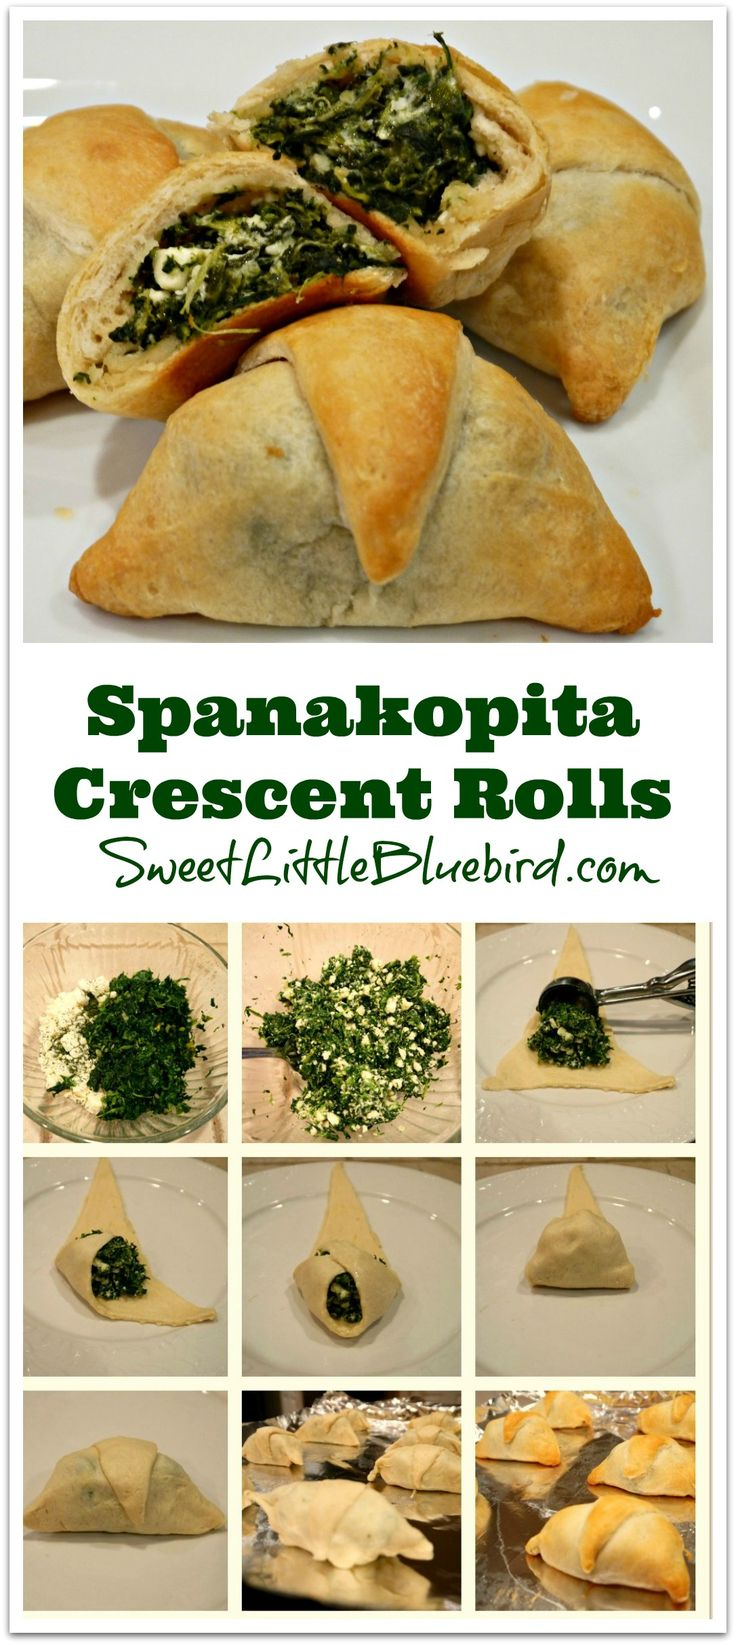 Spanakopita Crescent Rolls Recipe, the spinach & feta filling is also great for stuffed chicken breast.